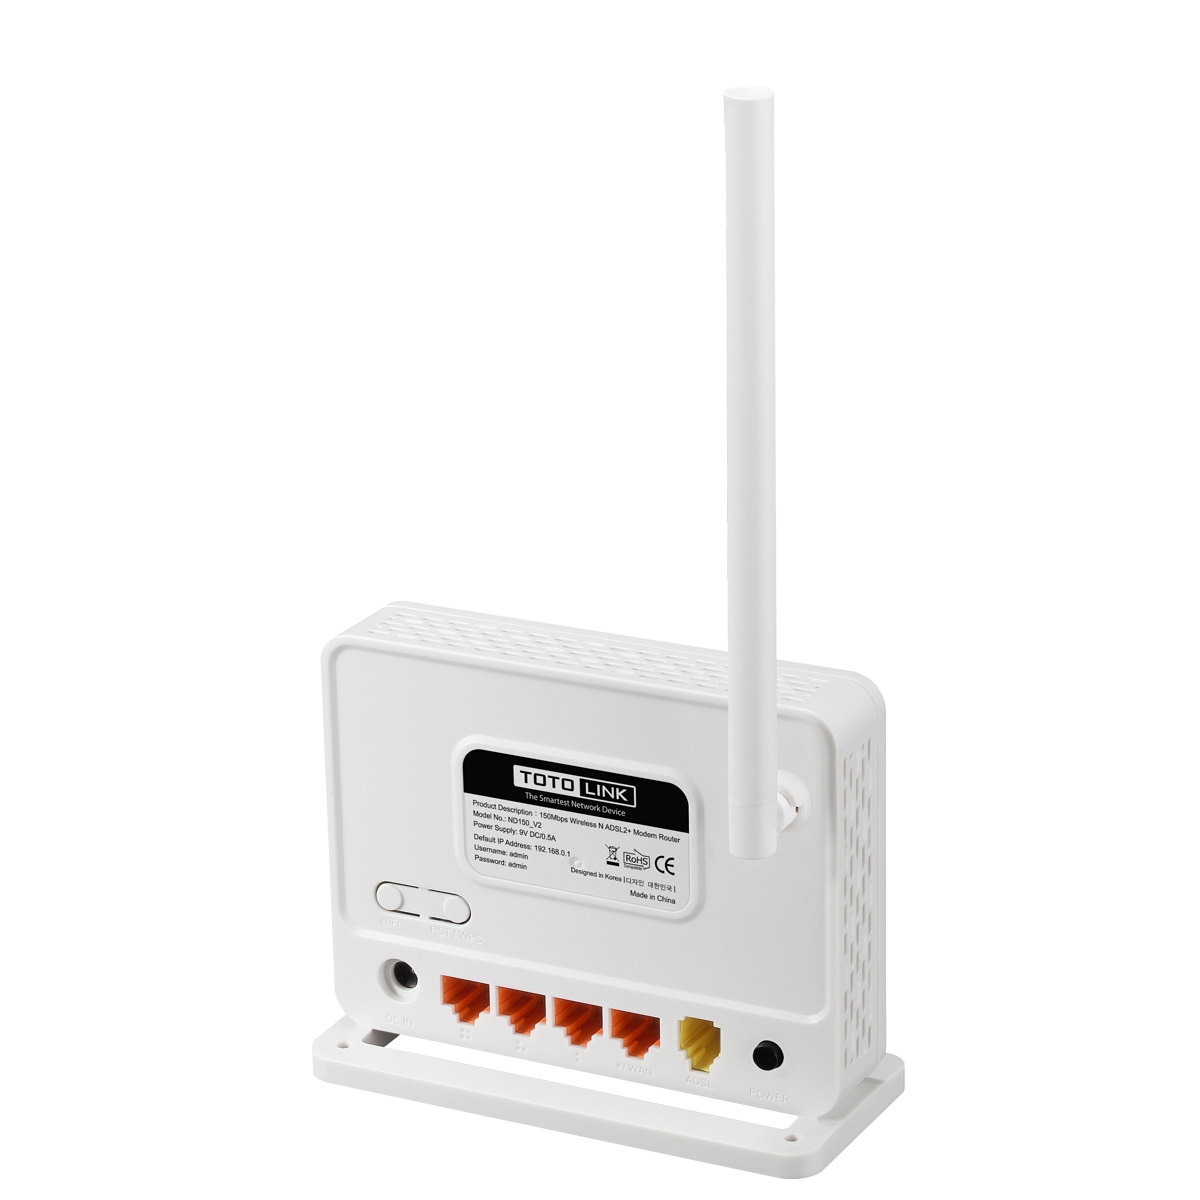 Adsl Back To Online Support How Setup A Netisdl Router With Tenda Modem 11n Wifi Adsl2 Dh301 4port Switch In One Device Elegant Totolink Nd Mbps Wireless N Lisconetcom